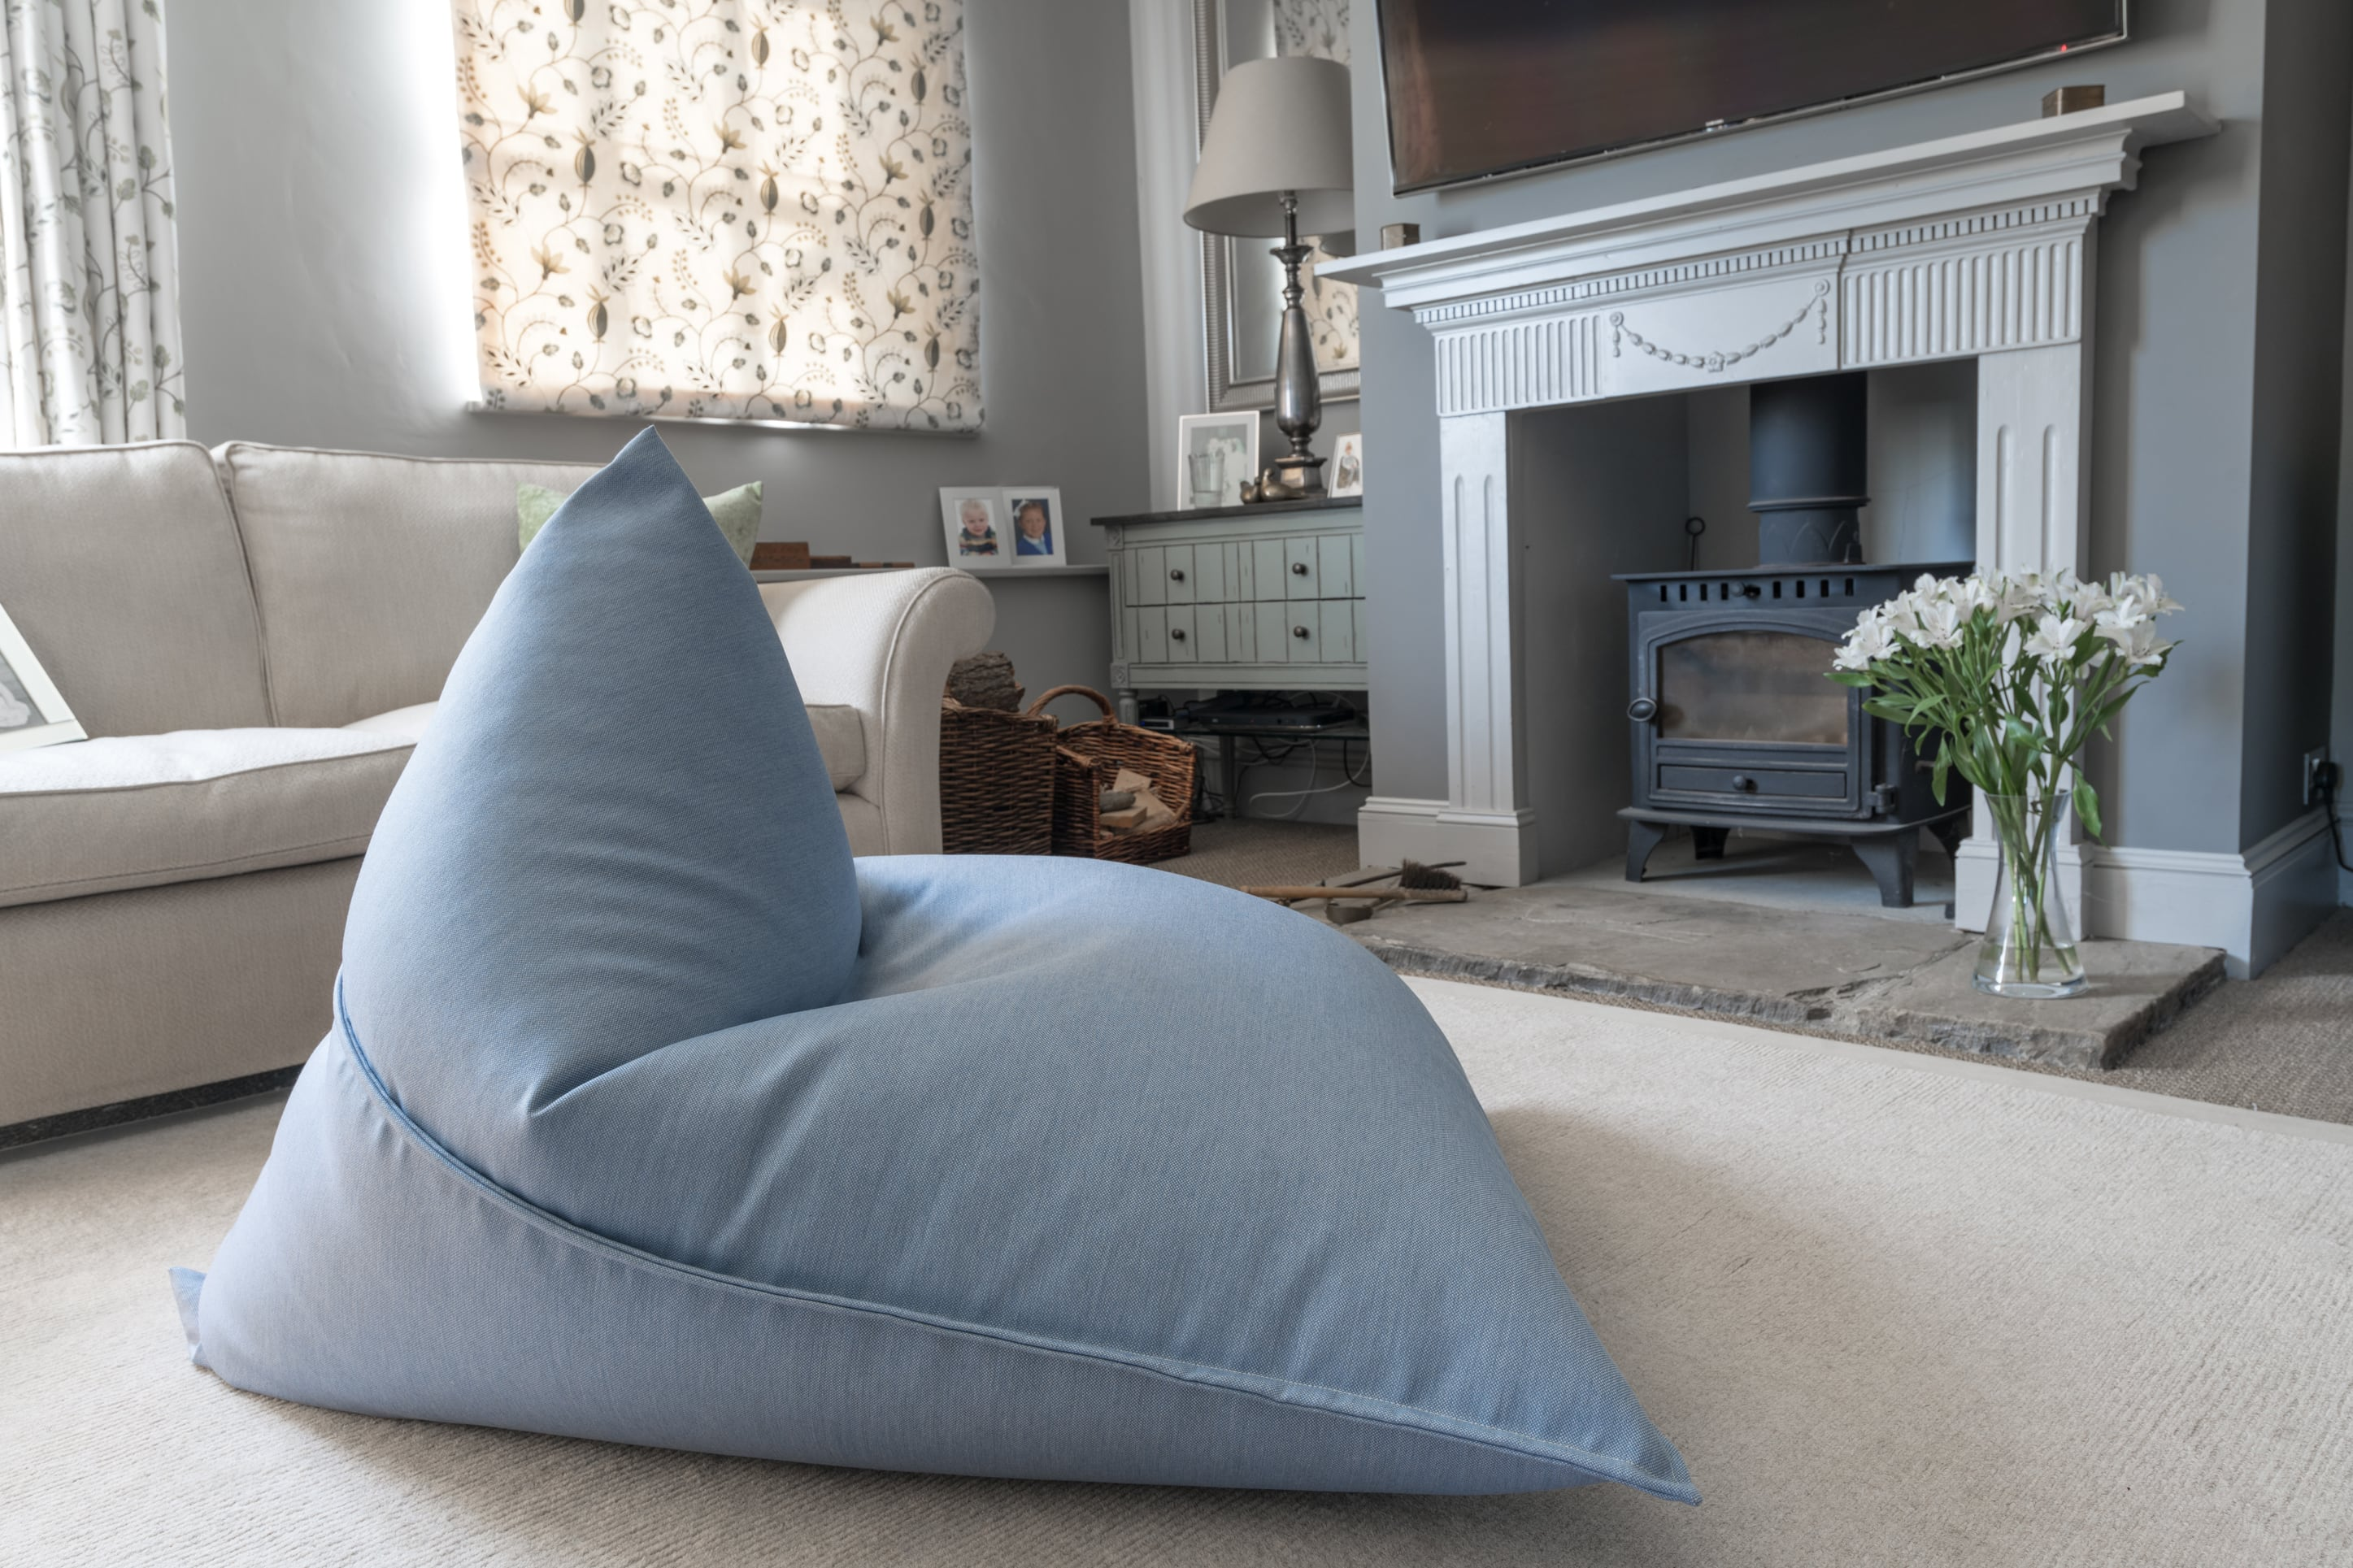 Adult Bean Bag Chair in Ice Blue